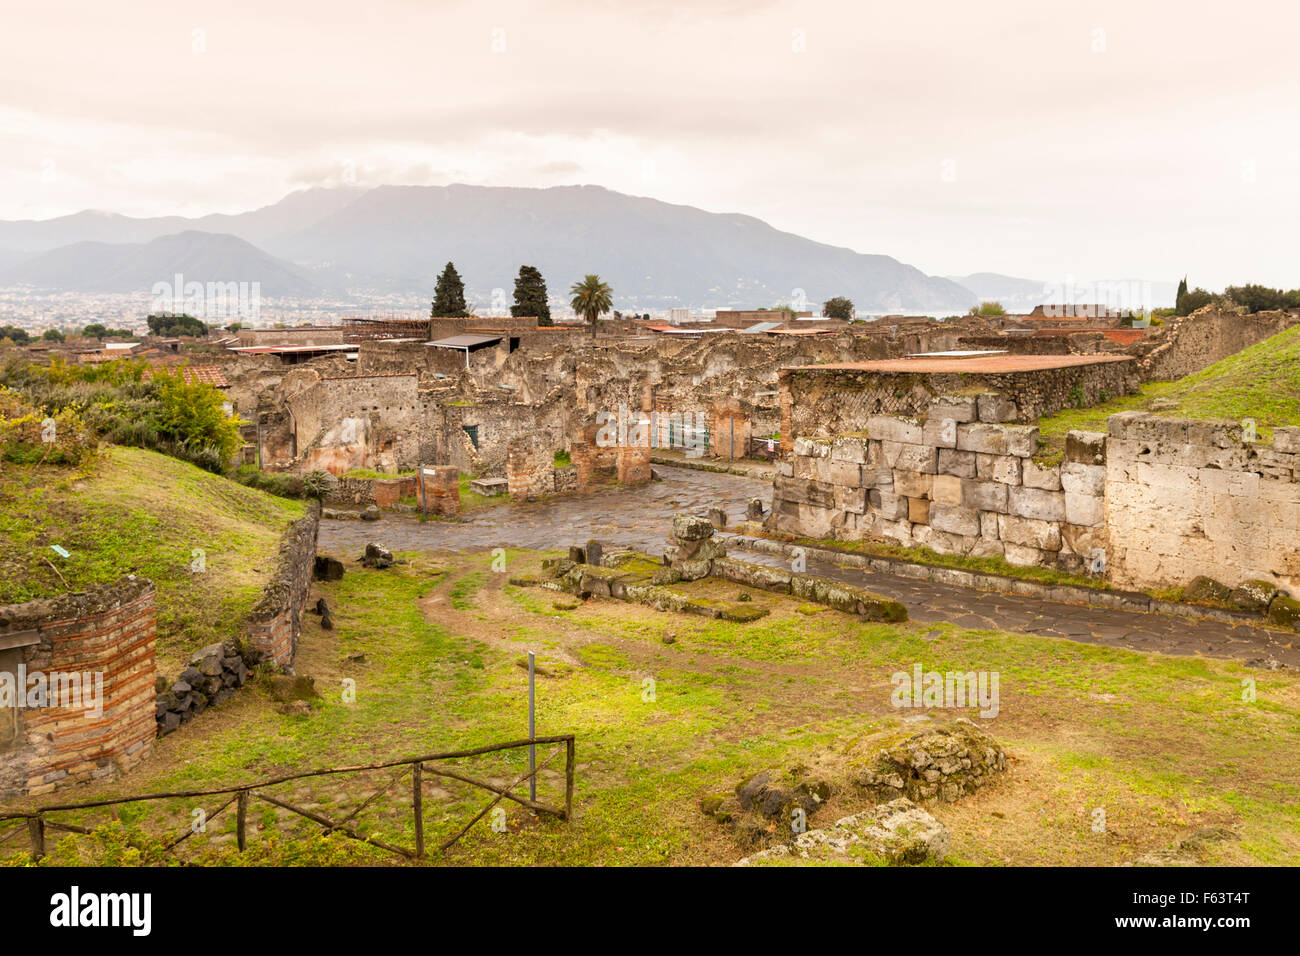 The ancient Roman city ruins of Pompeii, a UNESCO World Heritage site near Naples, Italy - Stock Image